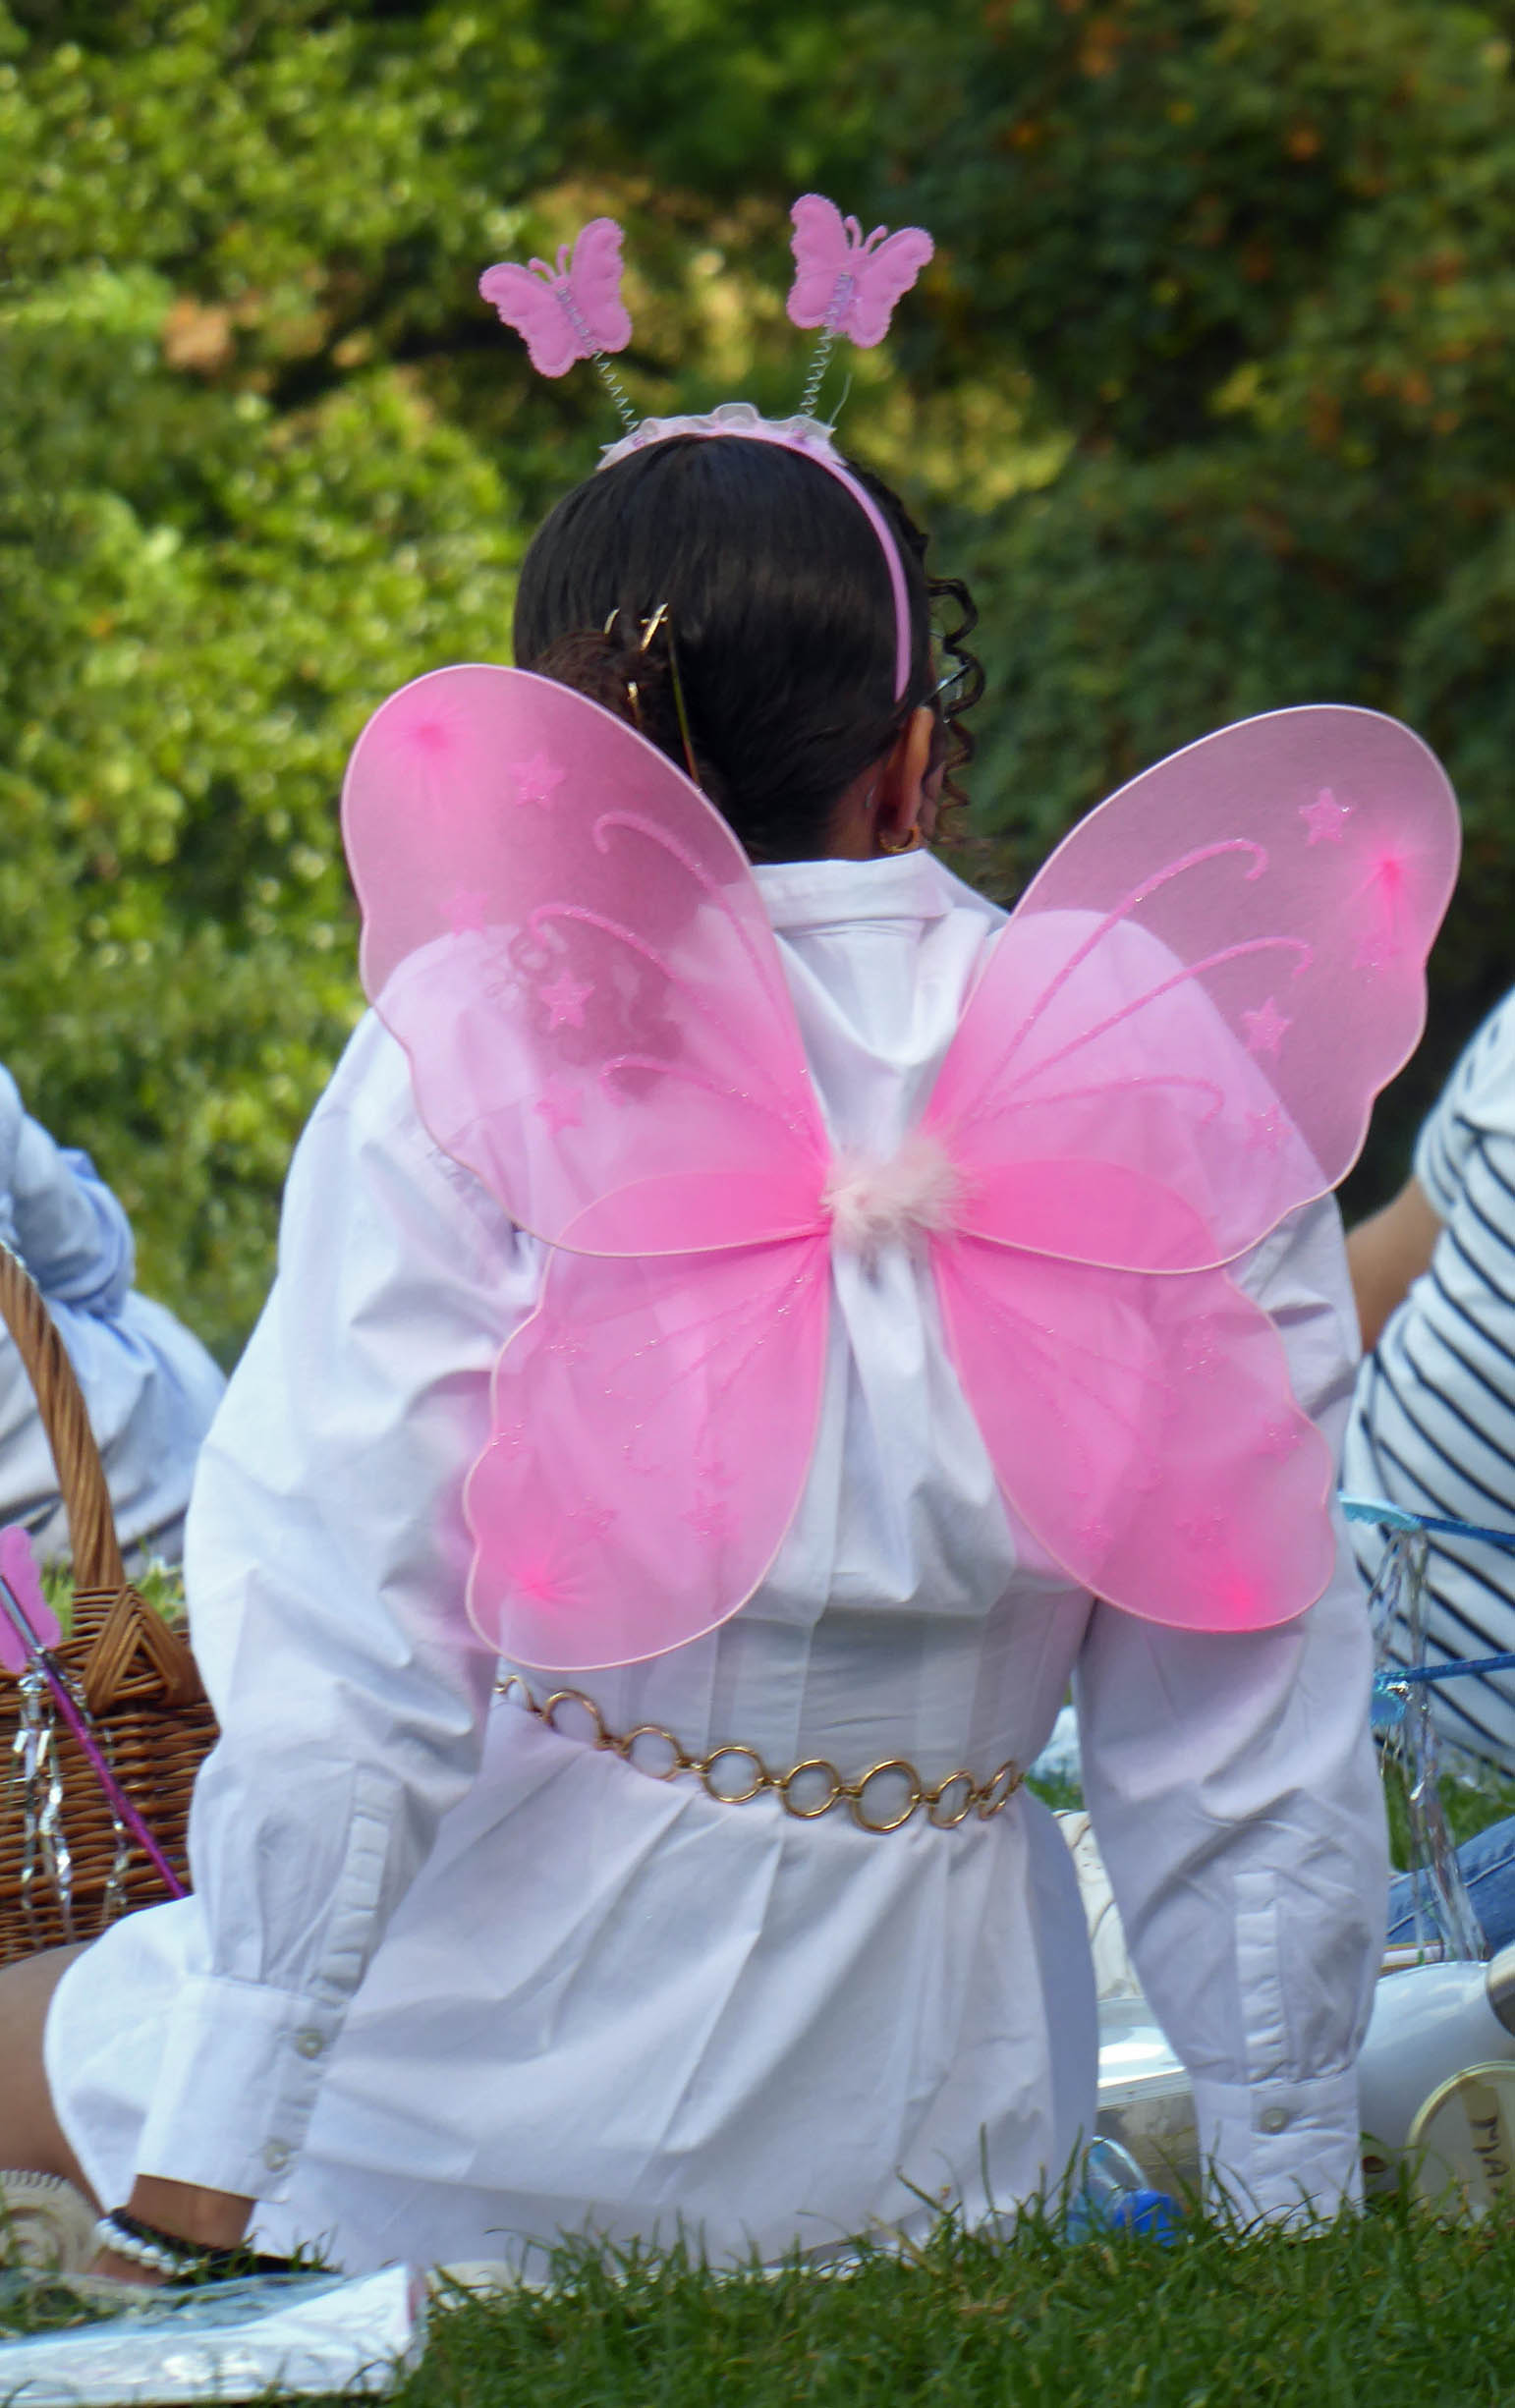 Young girl with pink butterfly wings, photographed from behind